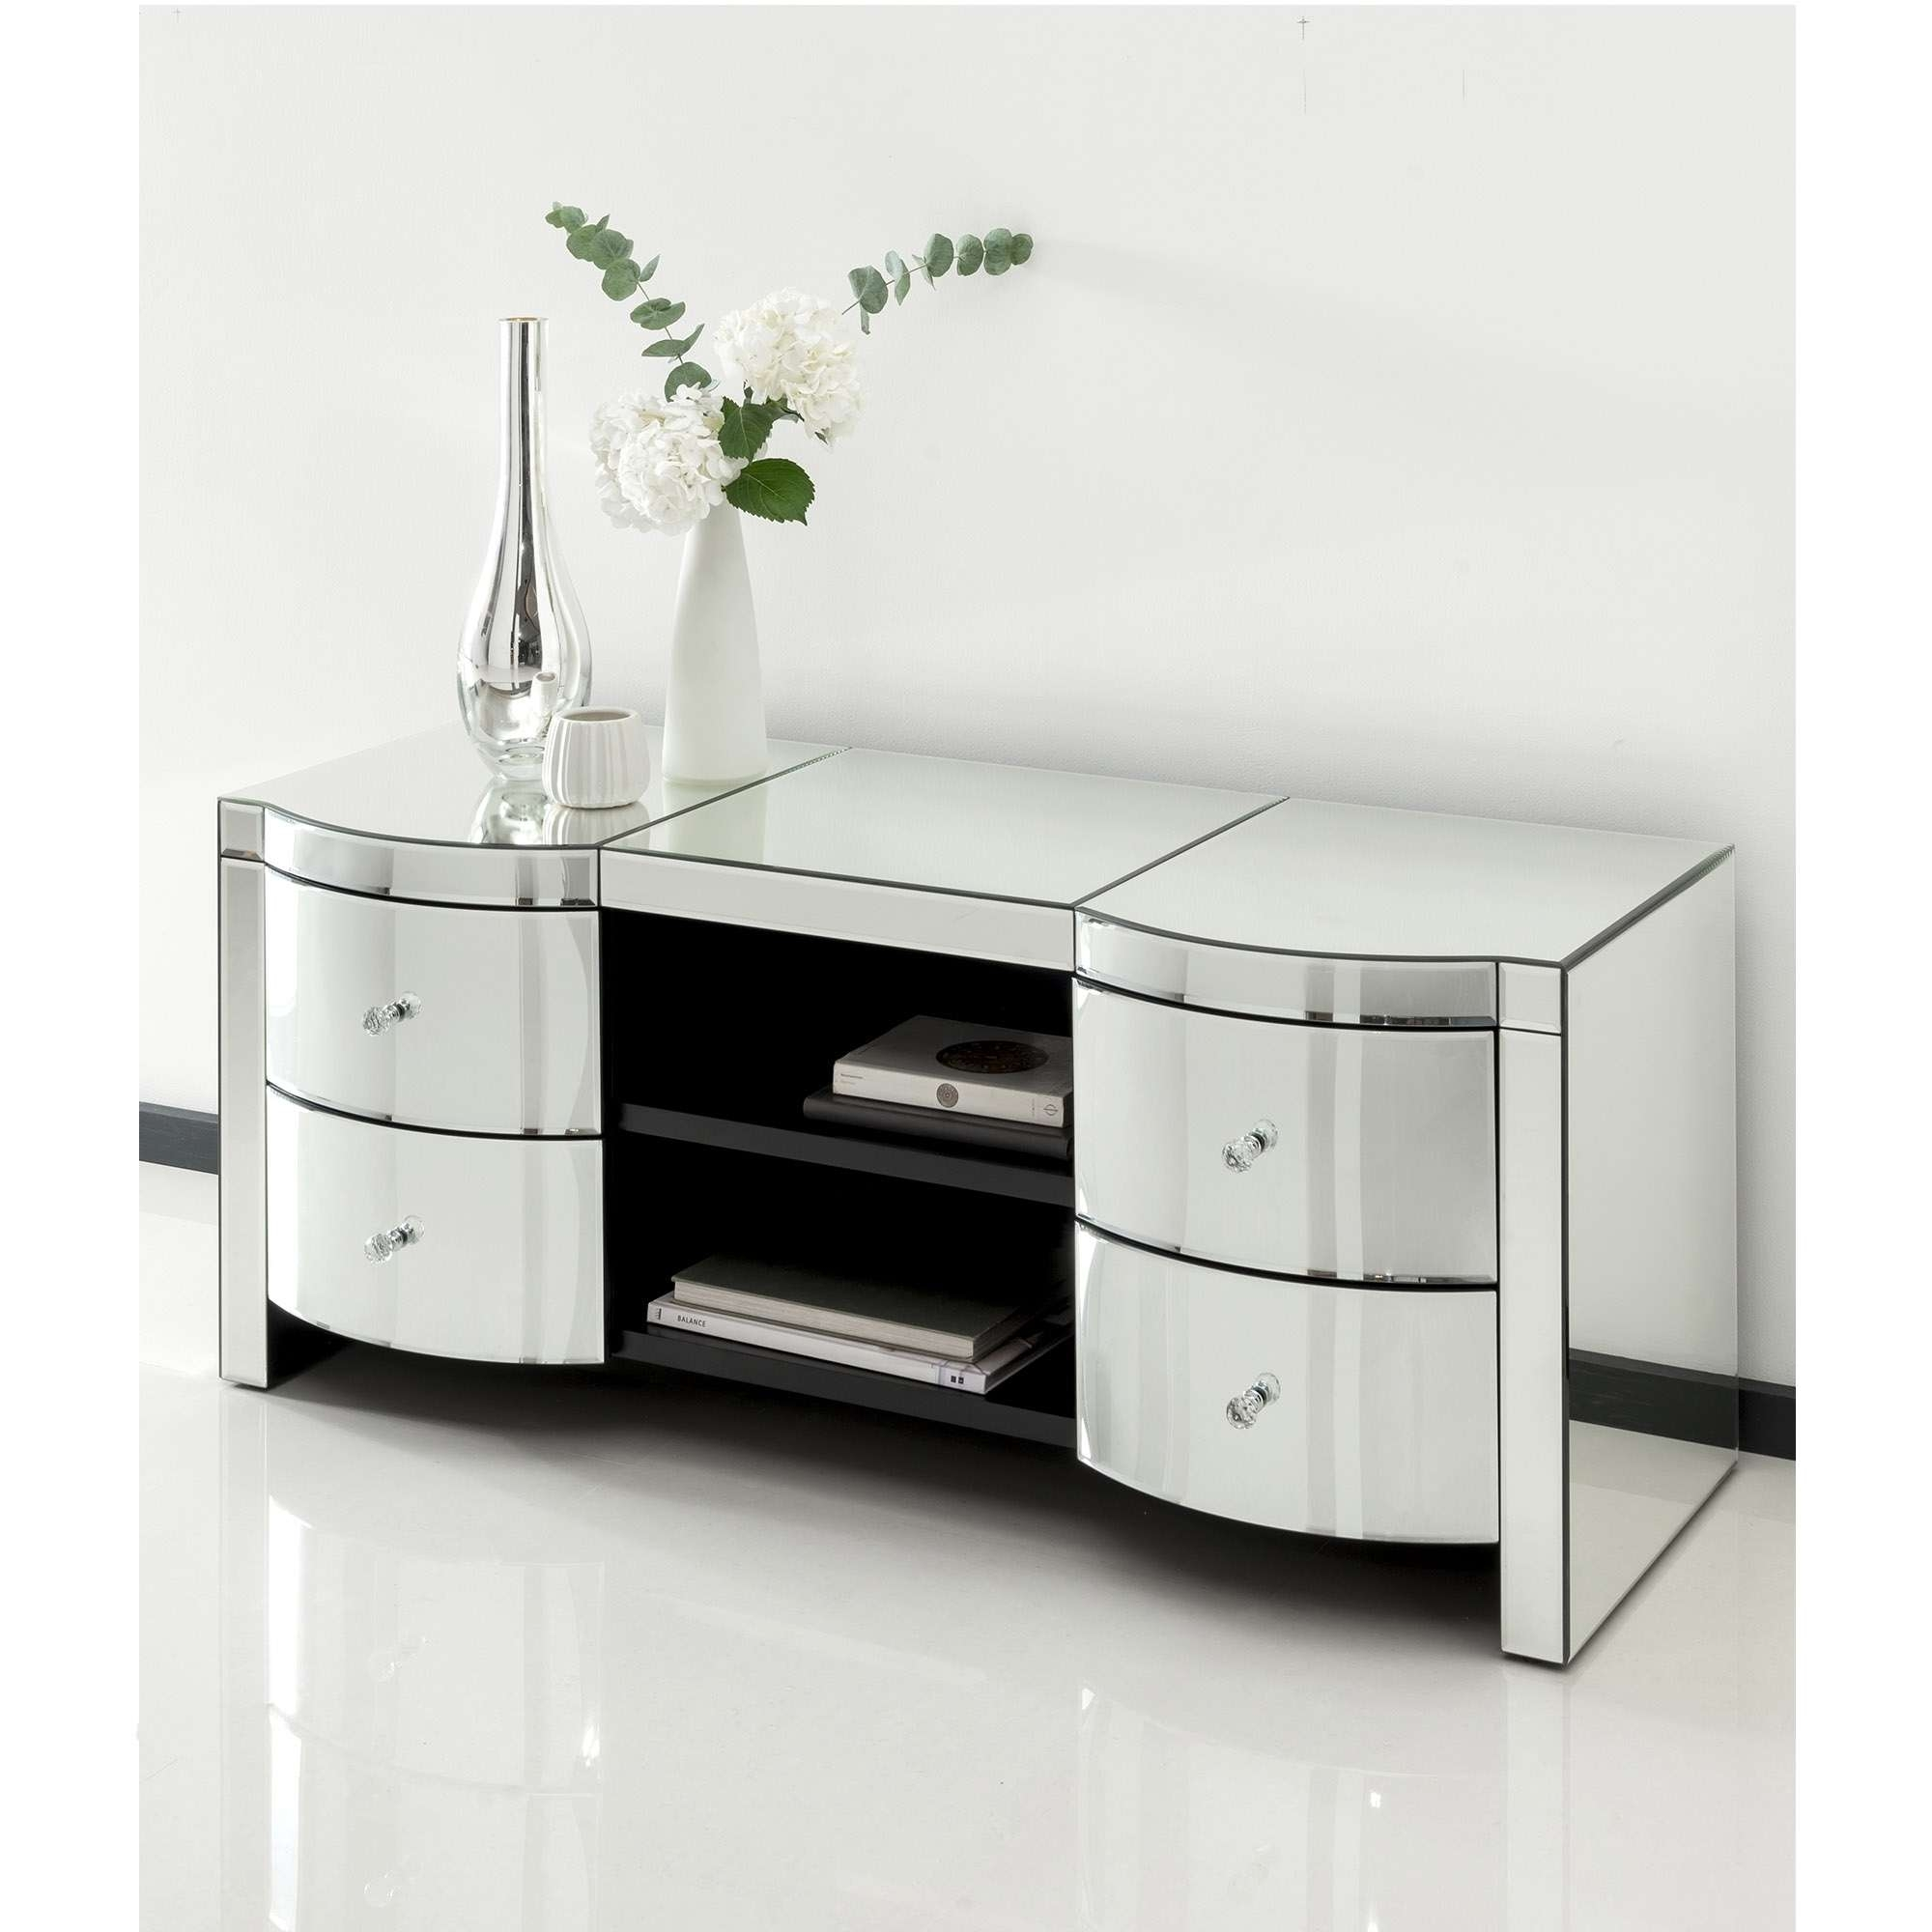 Romano Crystal Mirrored Tv Cabinet | Venetian Mirrored Furniture Intended For Mirrored Tv Stands (View 3 of 15)